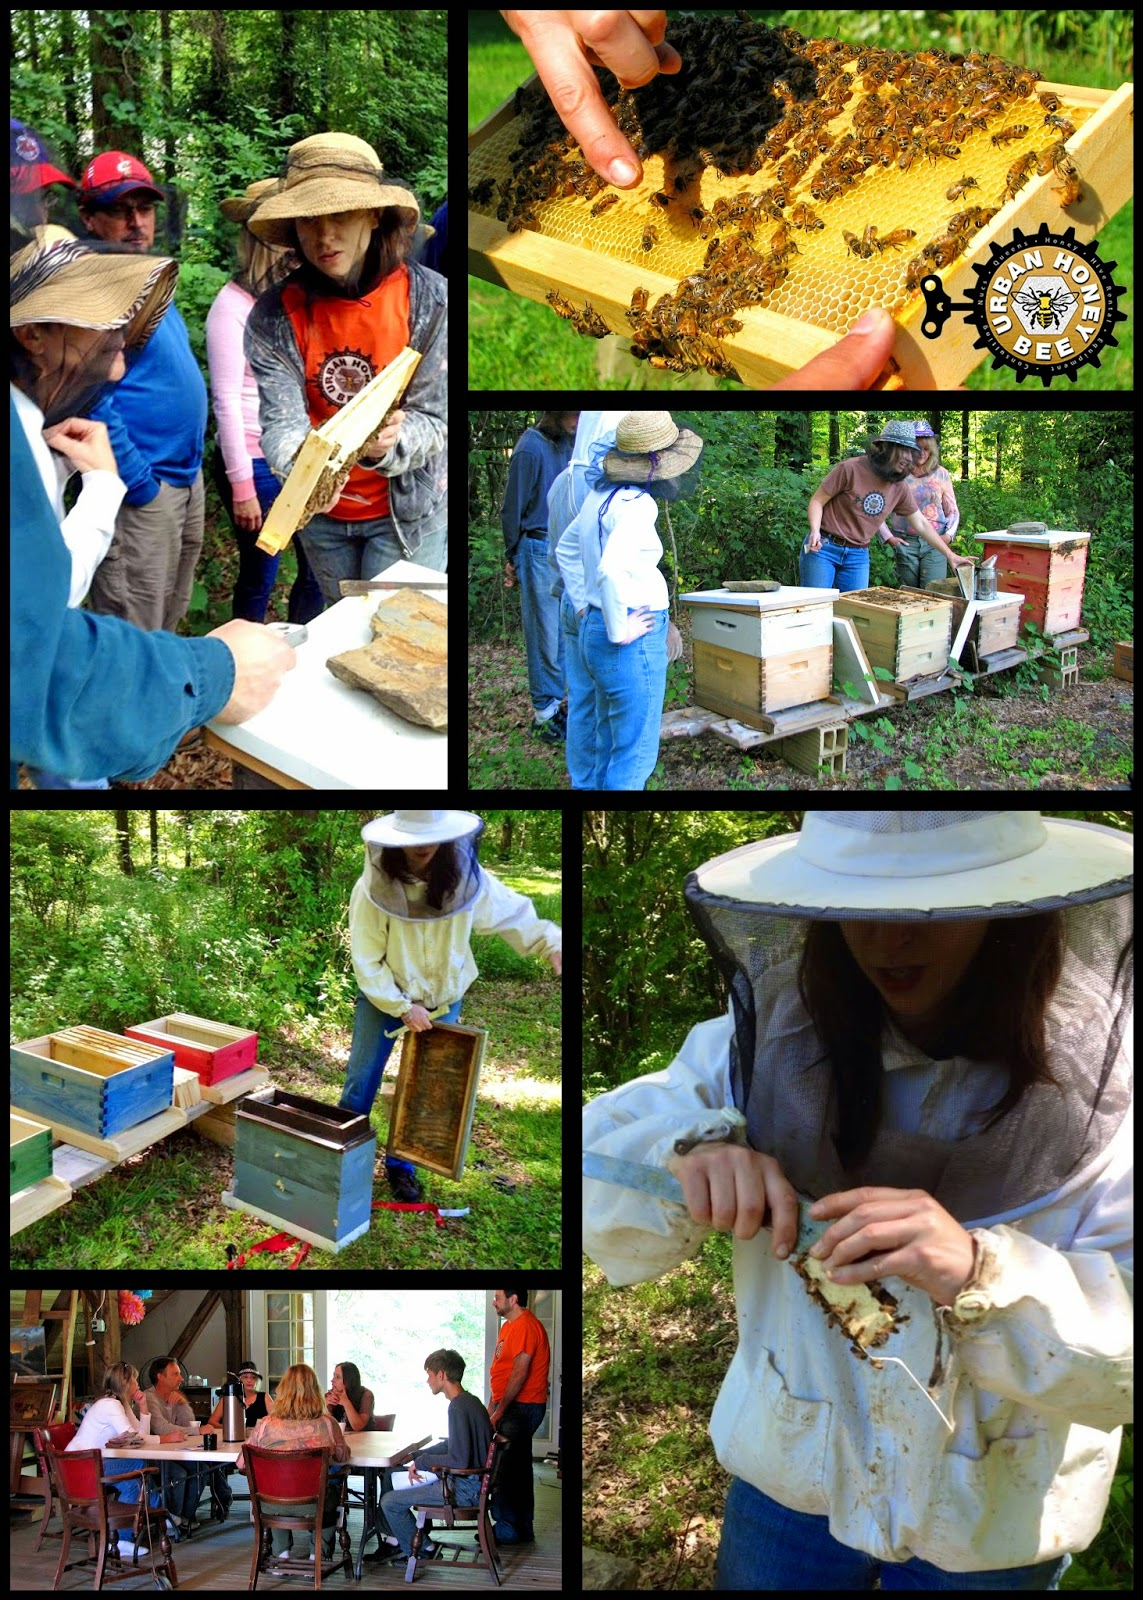 Wolf Creek Trading Company Will Be Expanding Its Apiary In 2017 With The Arrival Of Package Bees Come Learn How To Install